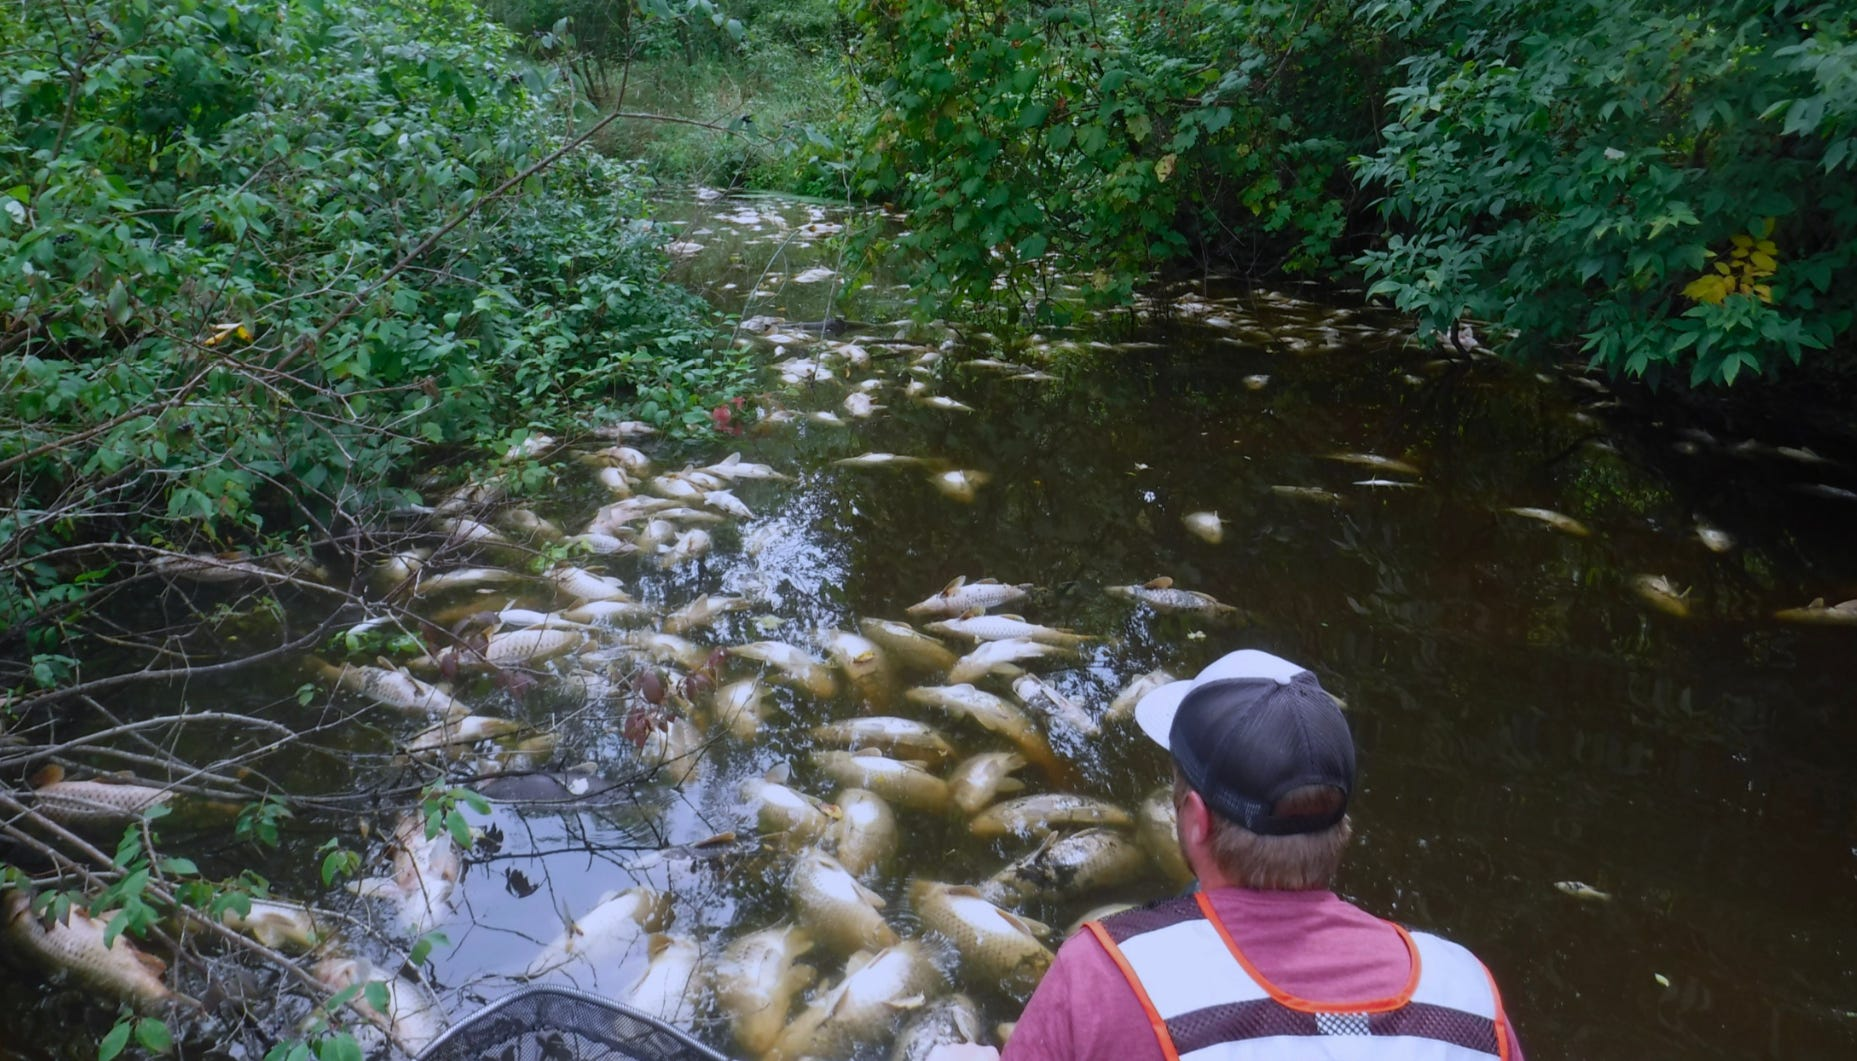 In August 2018,a combination of manurespreadingand heavy rains damaged miles of the Sheboygan River, killing fish.